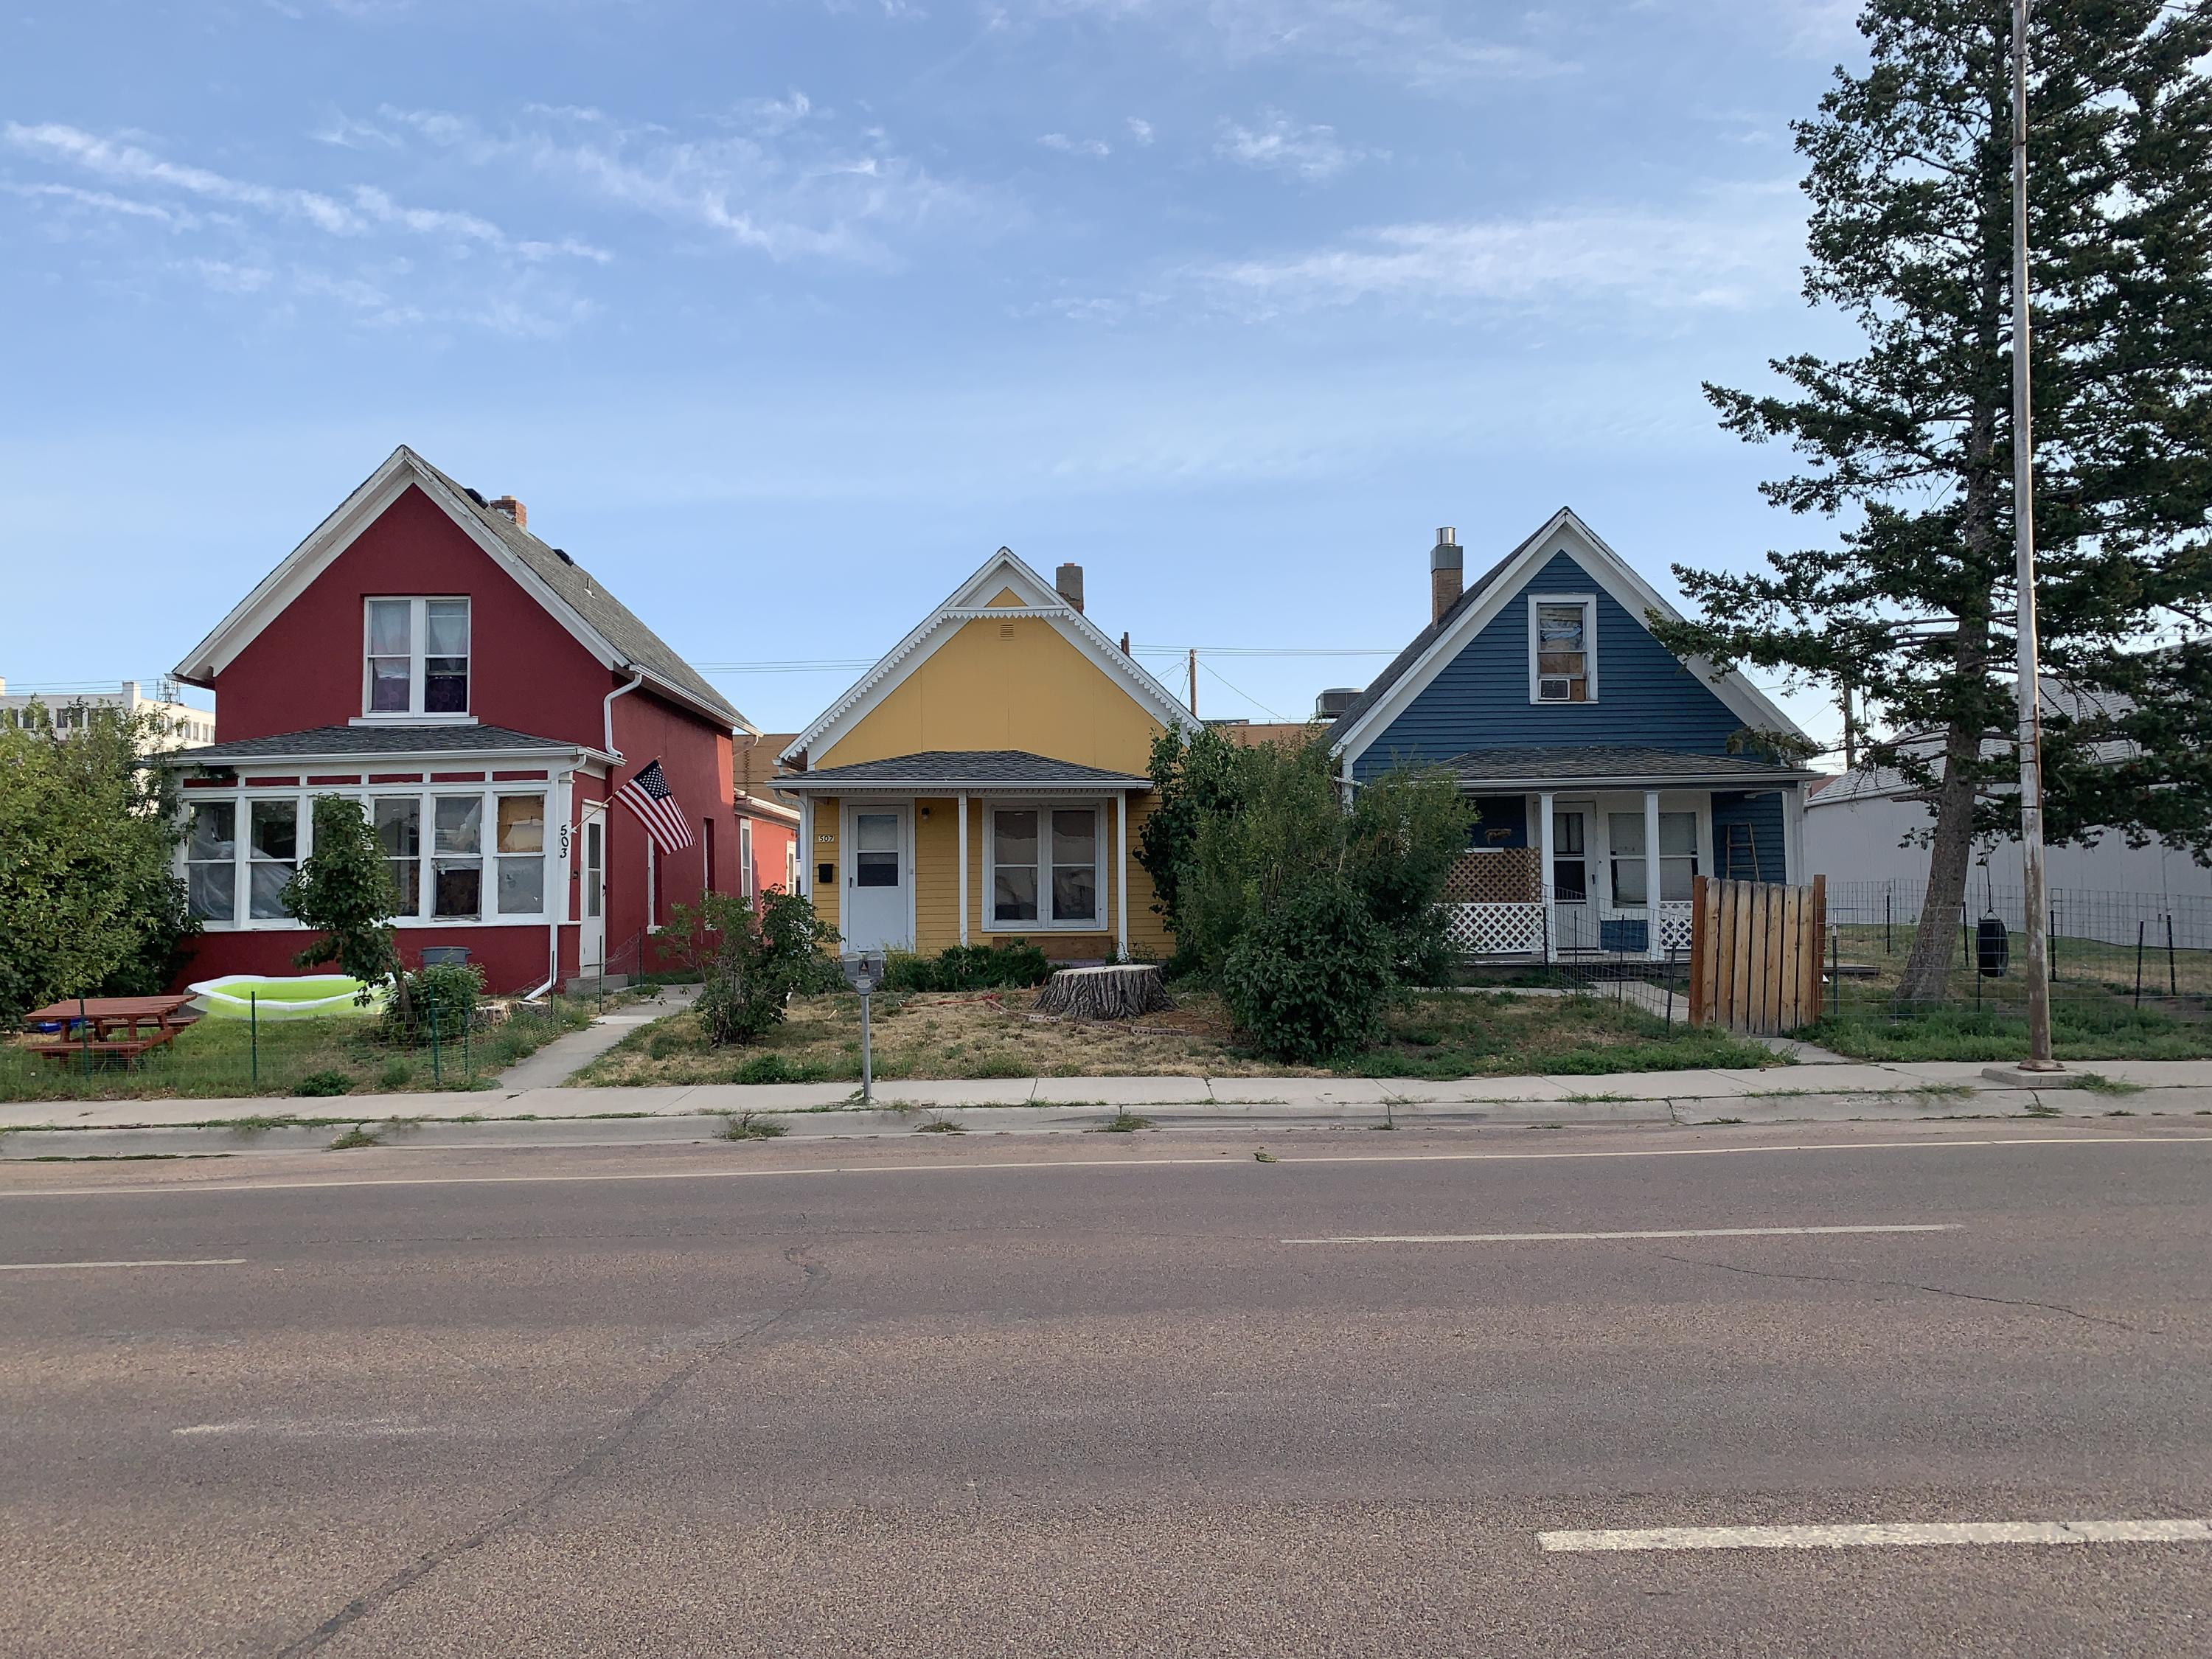 Front 3 houses